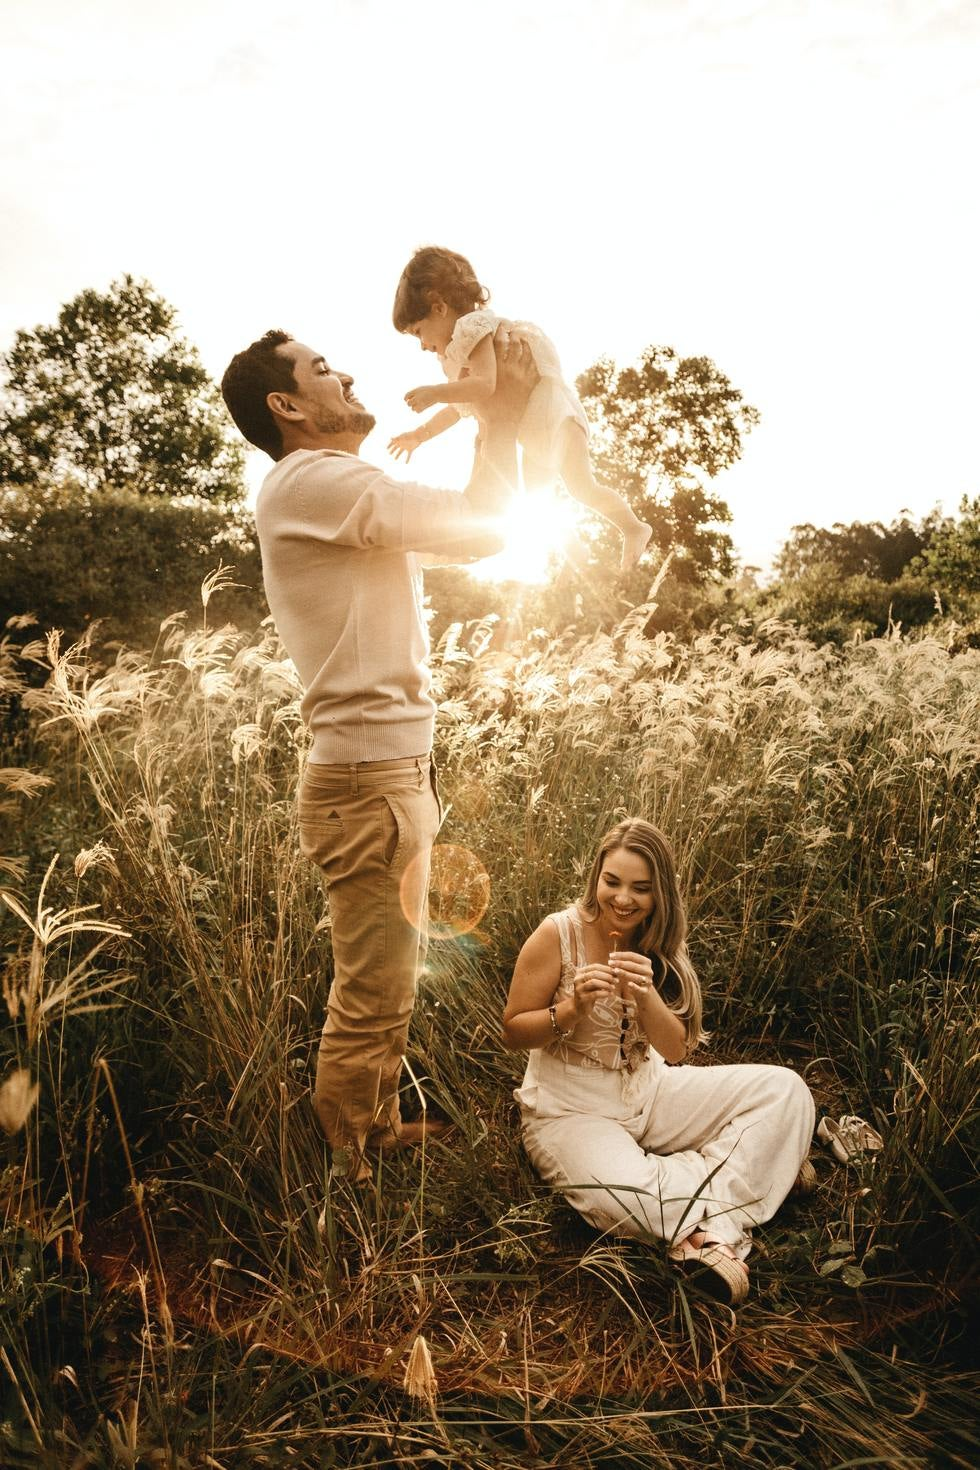 Mother, father, and baby enjoying outdoors